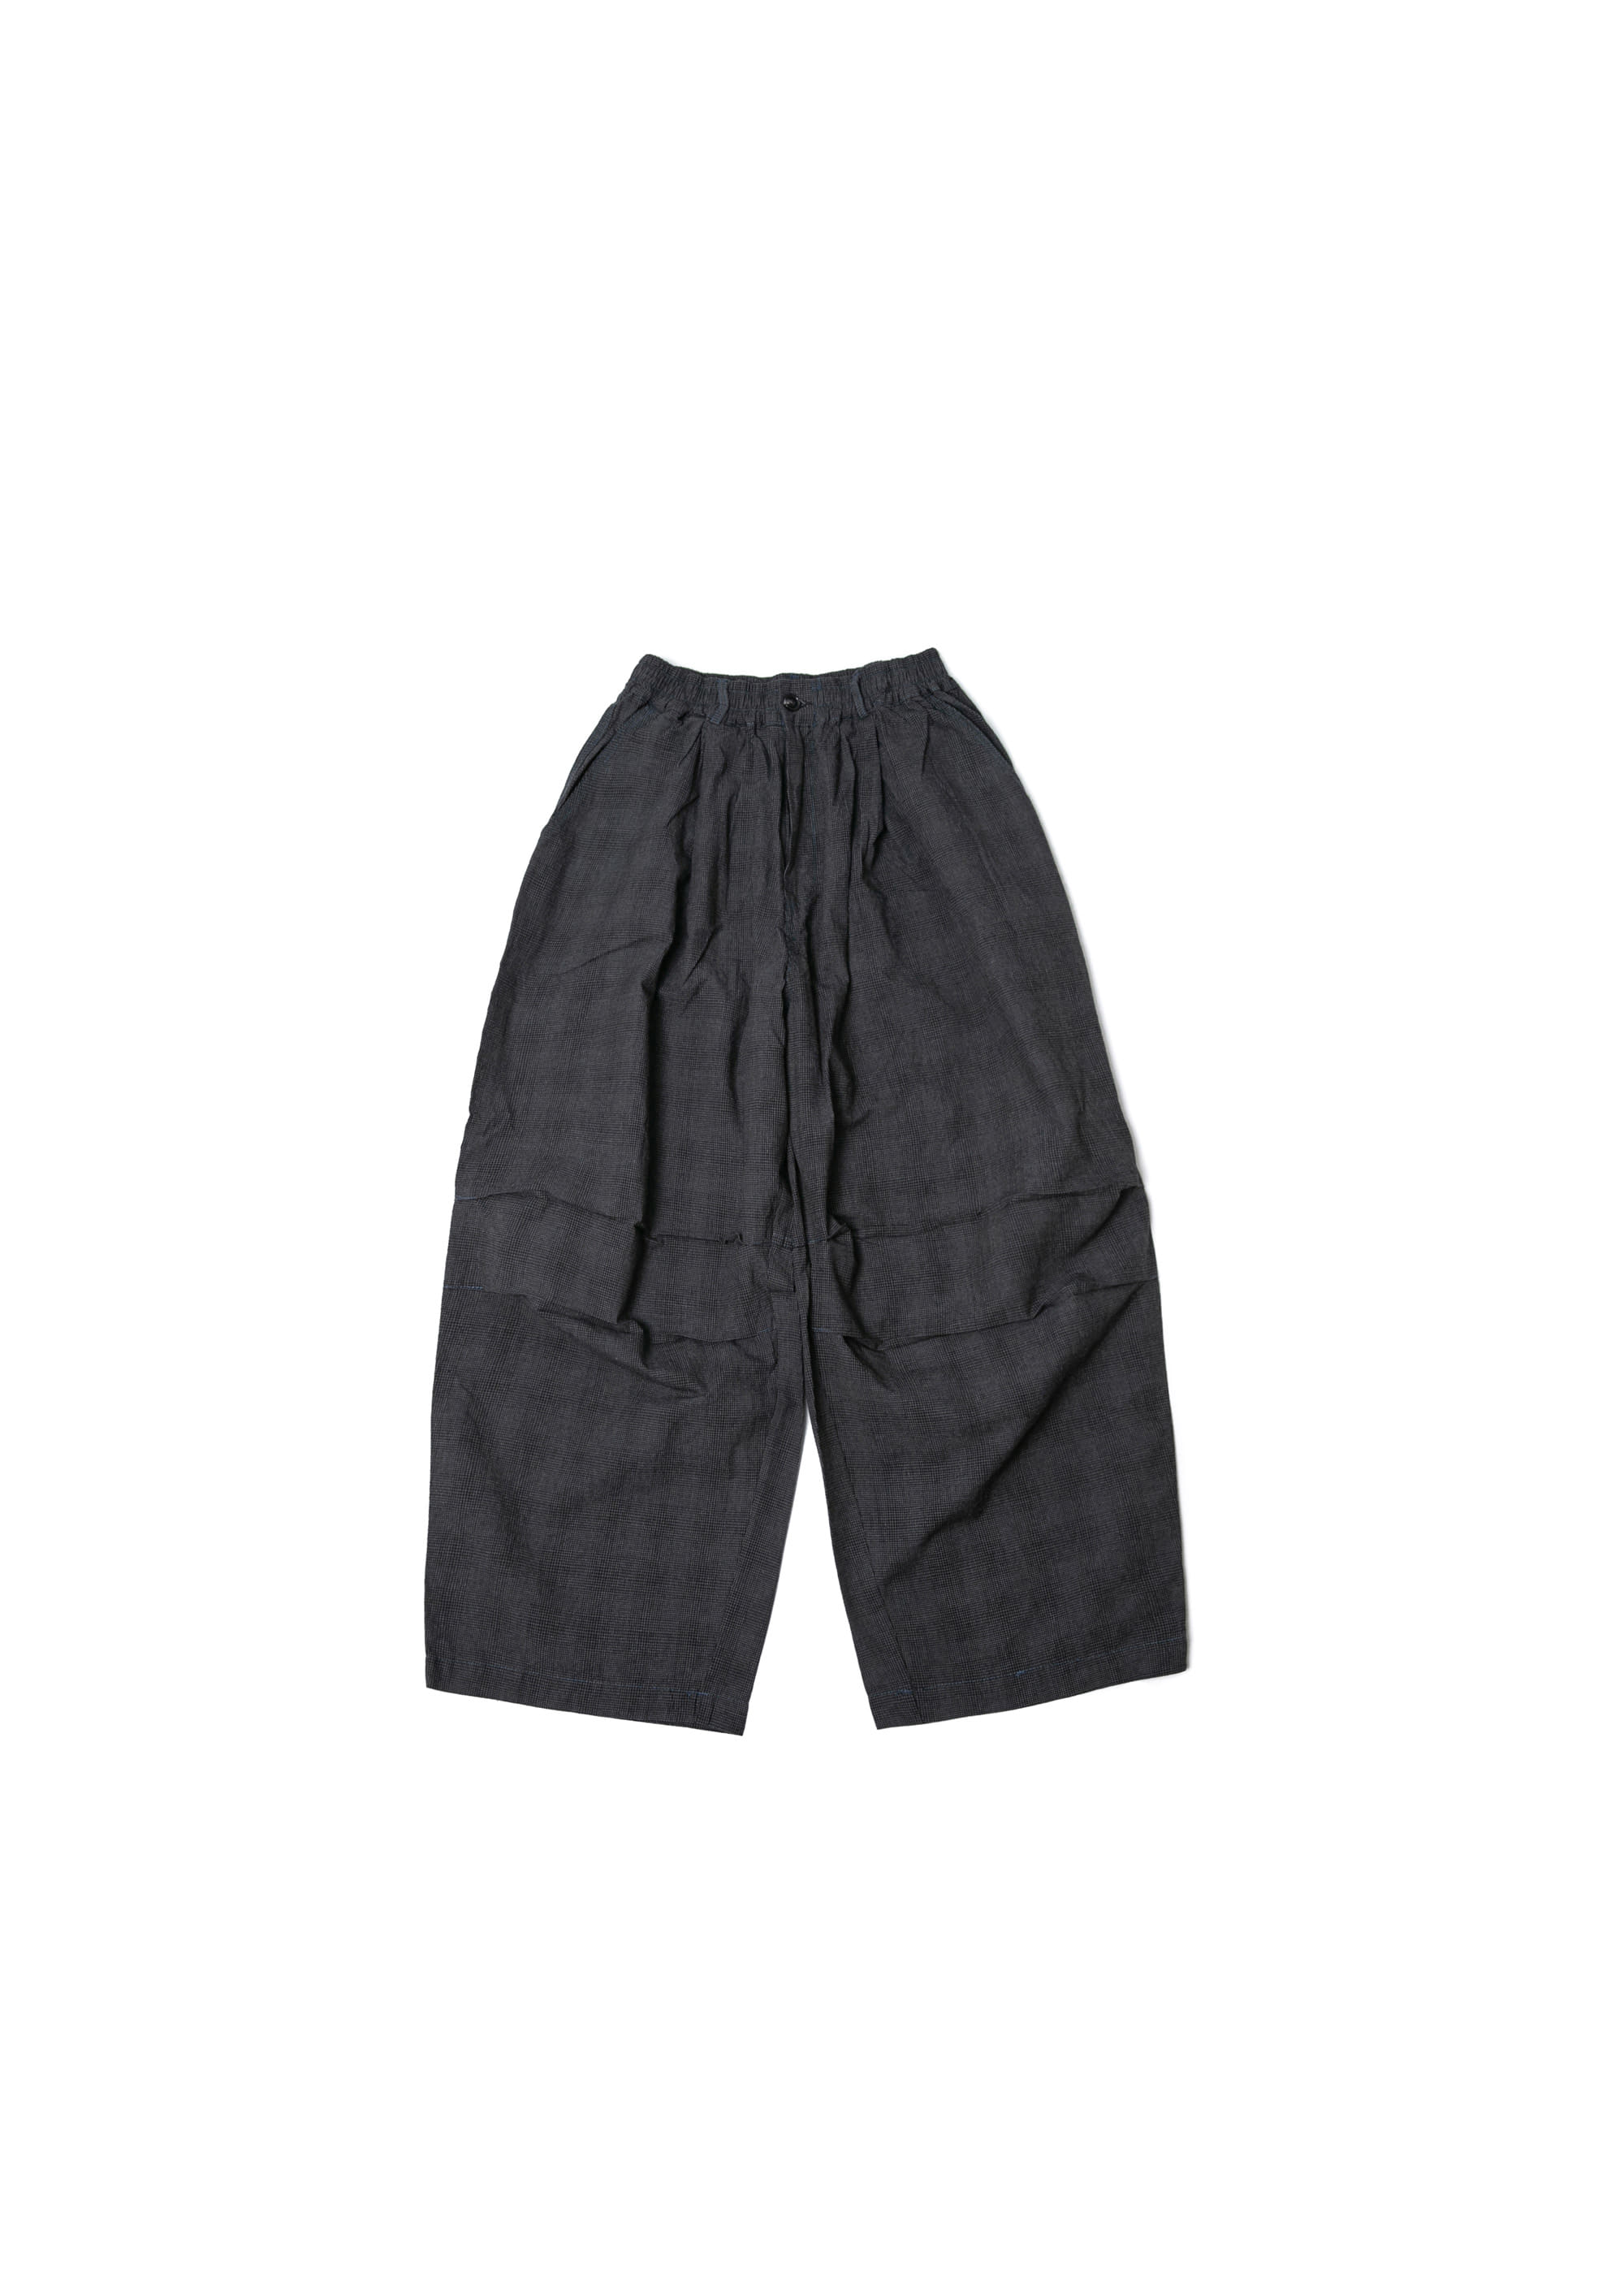 Square Check Army Balloon Pants - Black